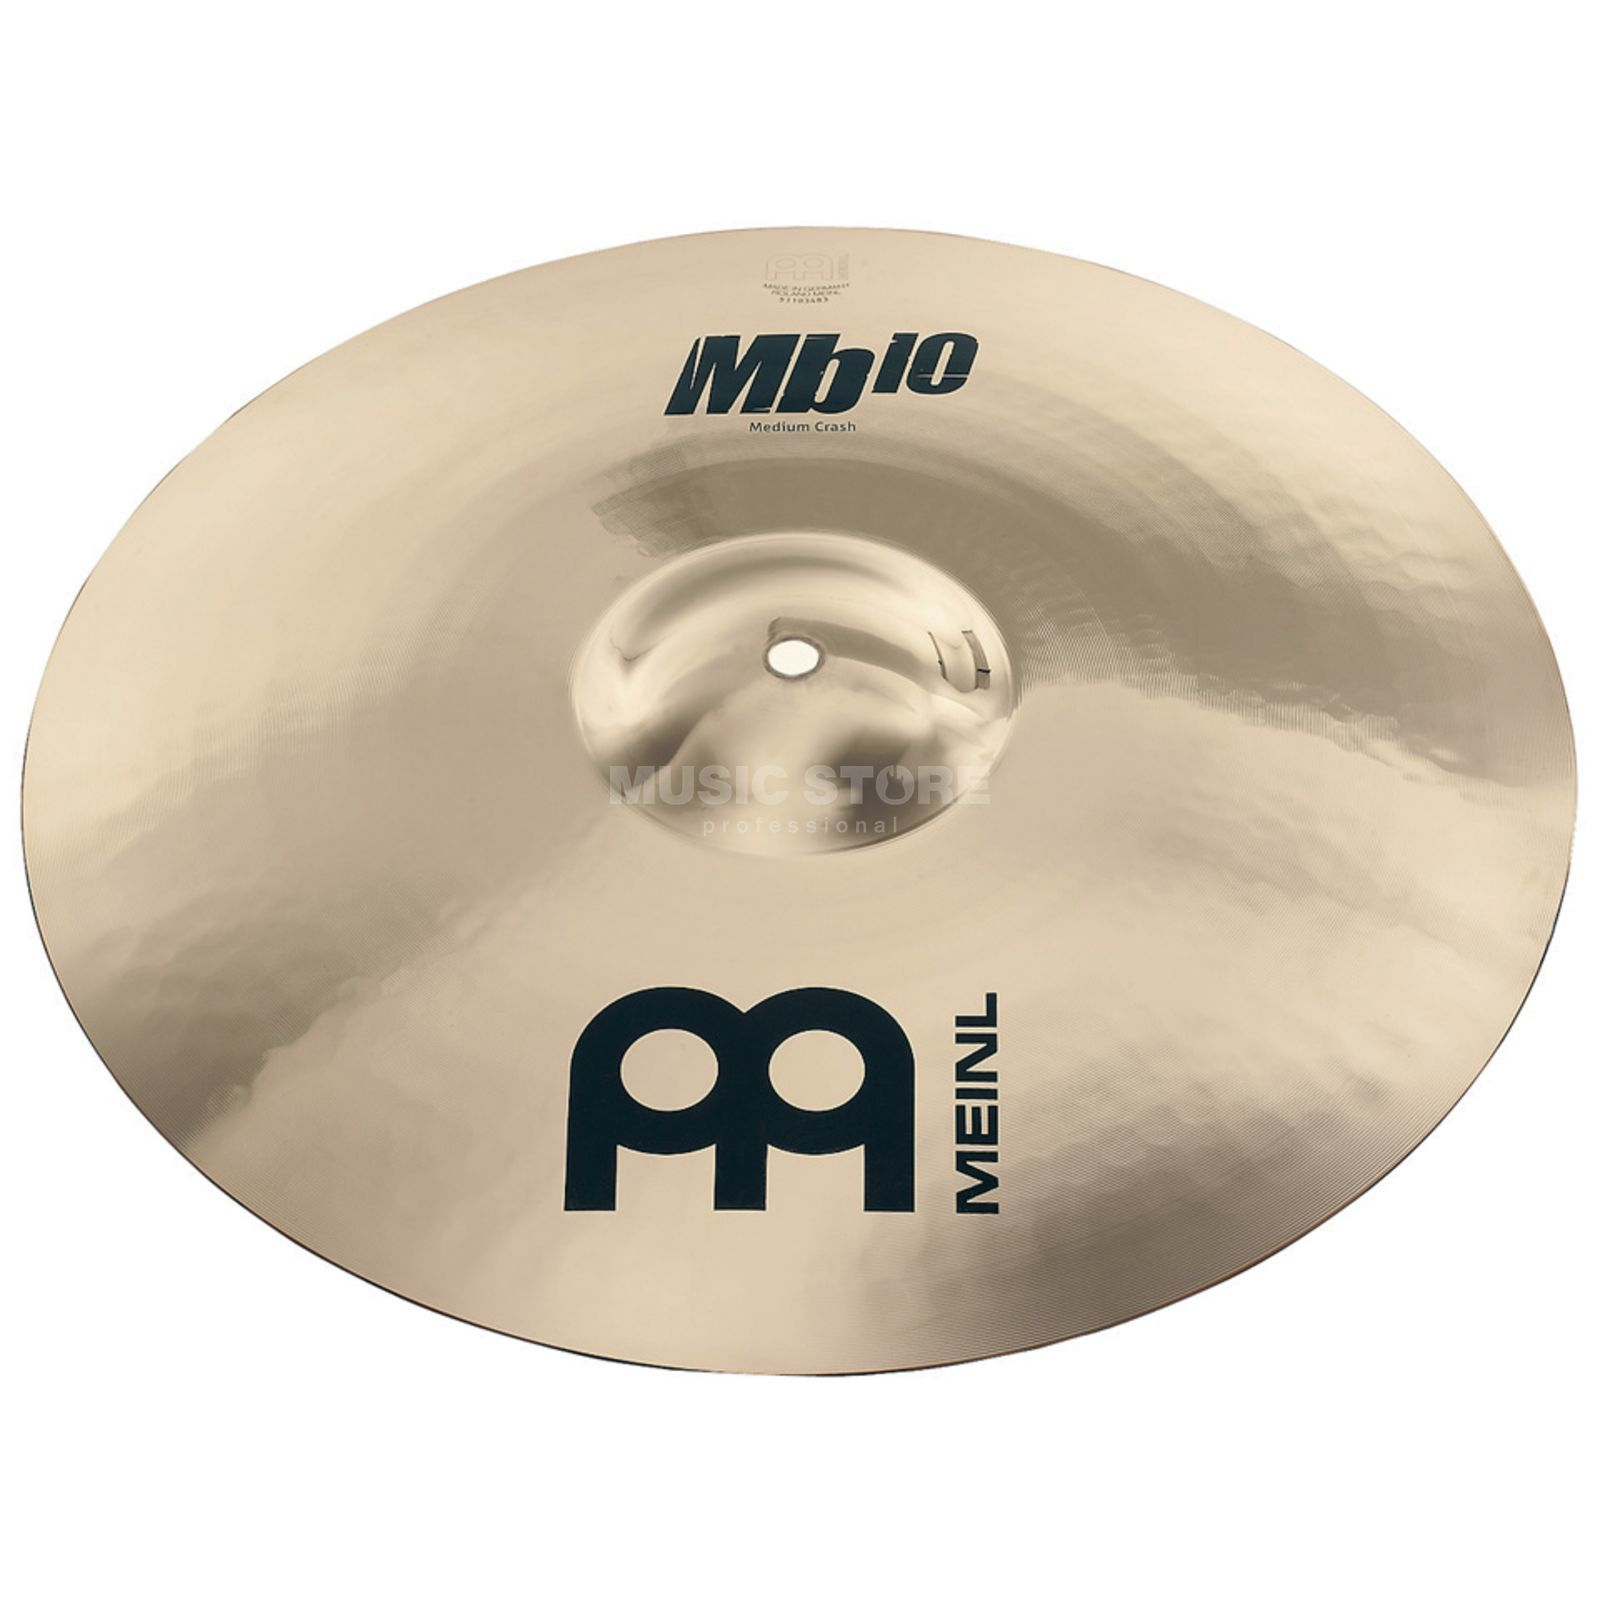 "Meinl MB10 Medium Crash 16"" MB10-16 mC-B, finition brillante Image du produit"